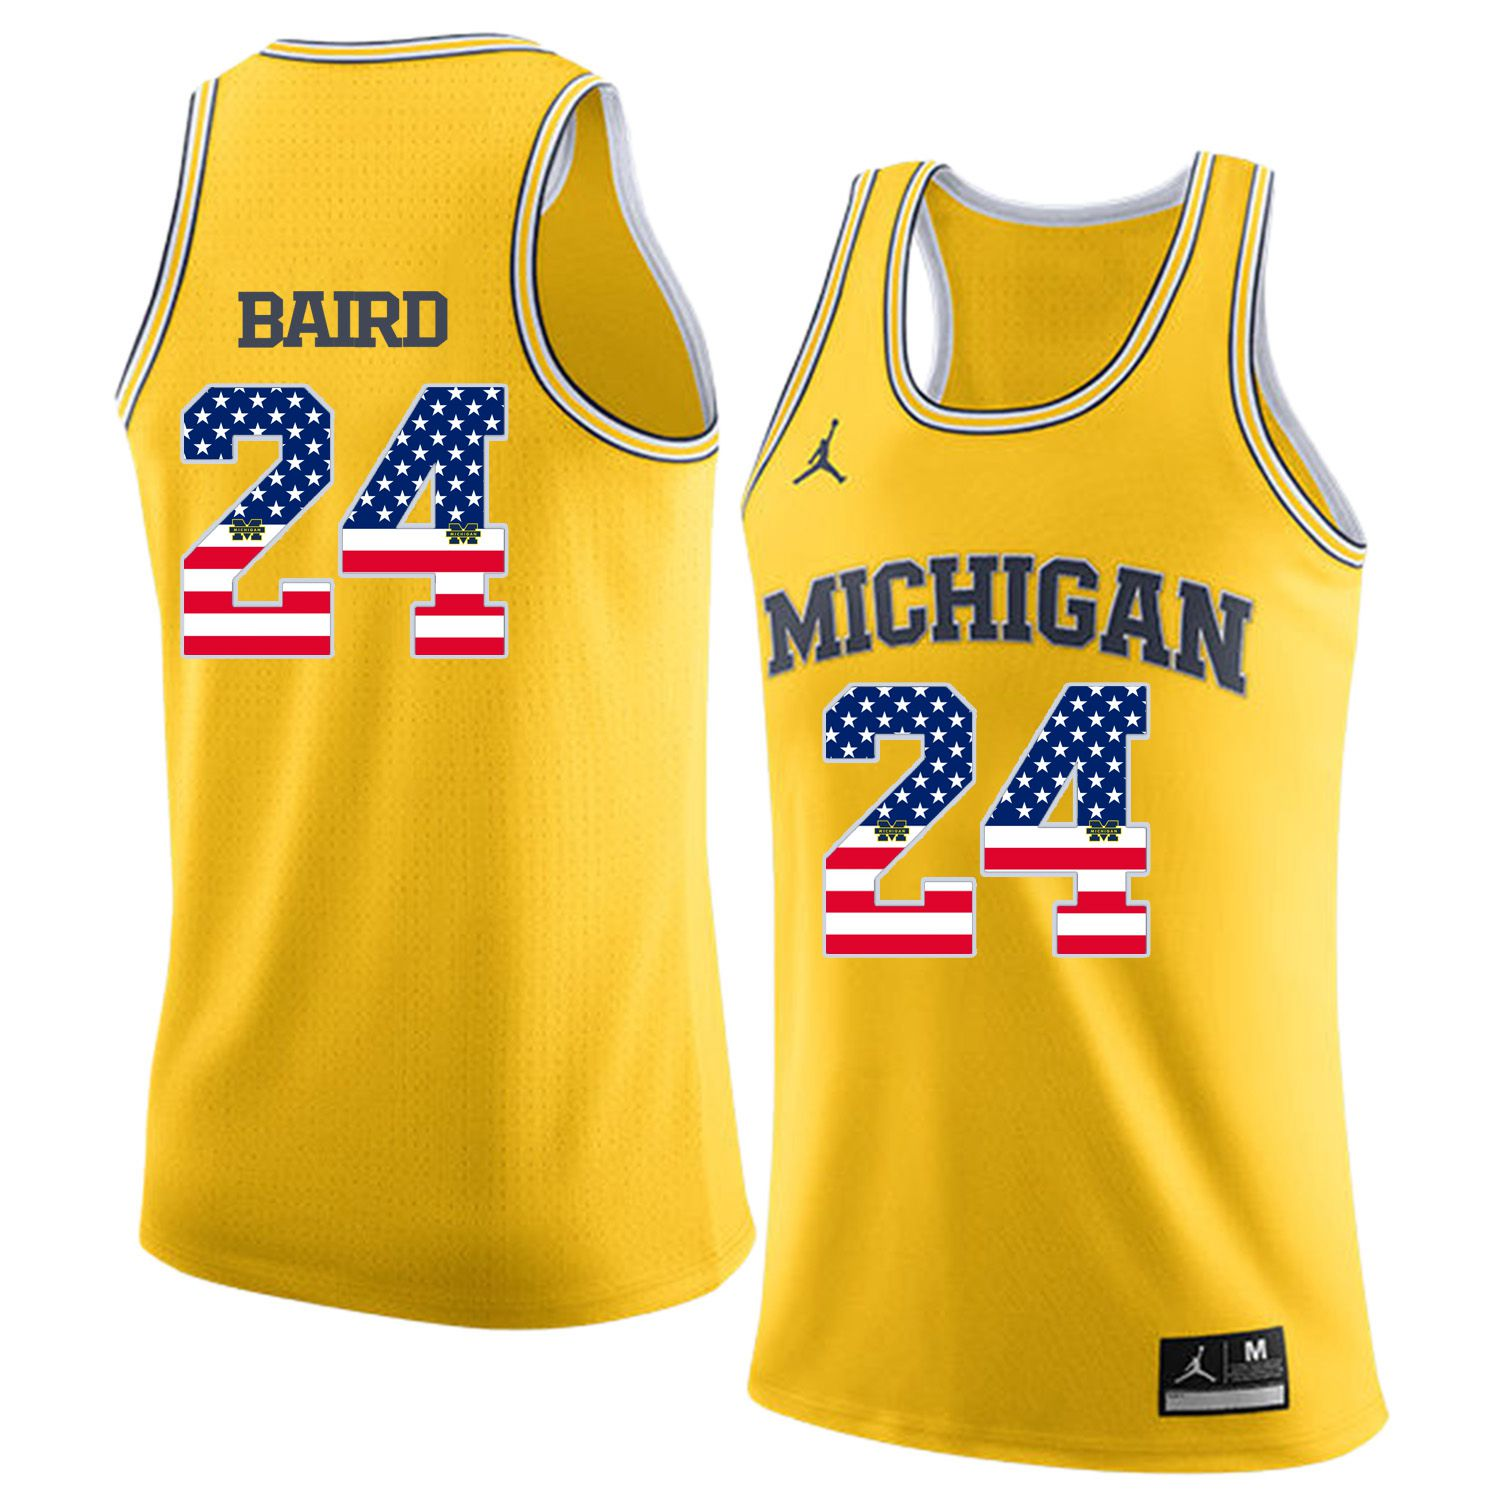 Men Jordan University of Michigan Basketball Yellow 24 Baird Flag Customized NCAA Jerseys